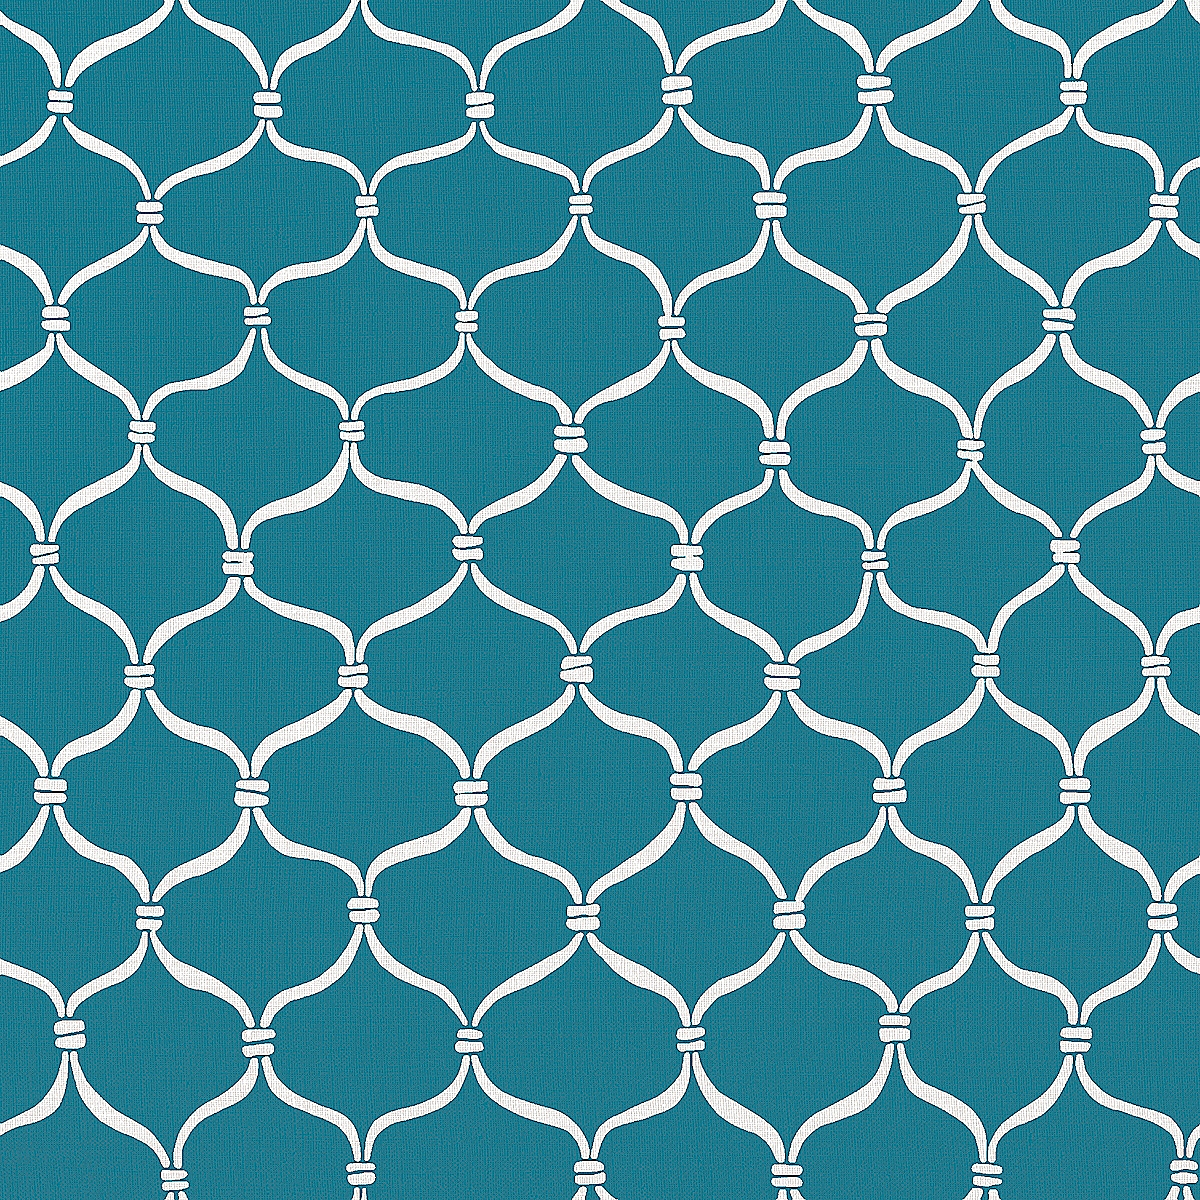 Cast-a-Net: Lagoon (fabric yardage)